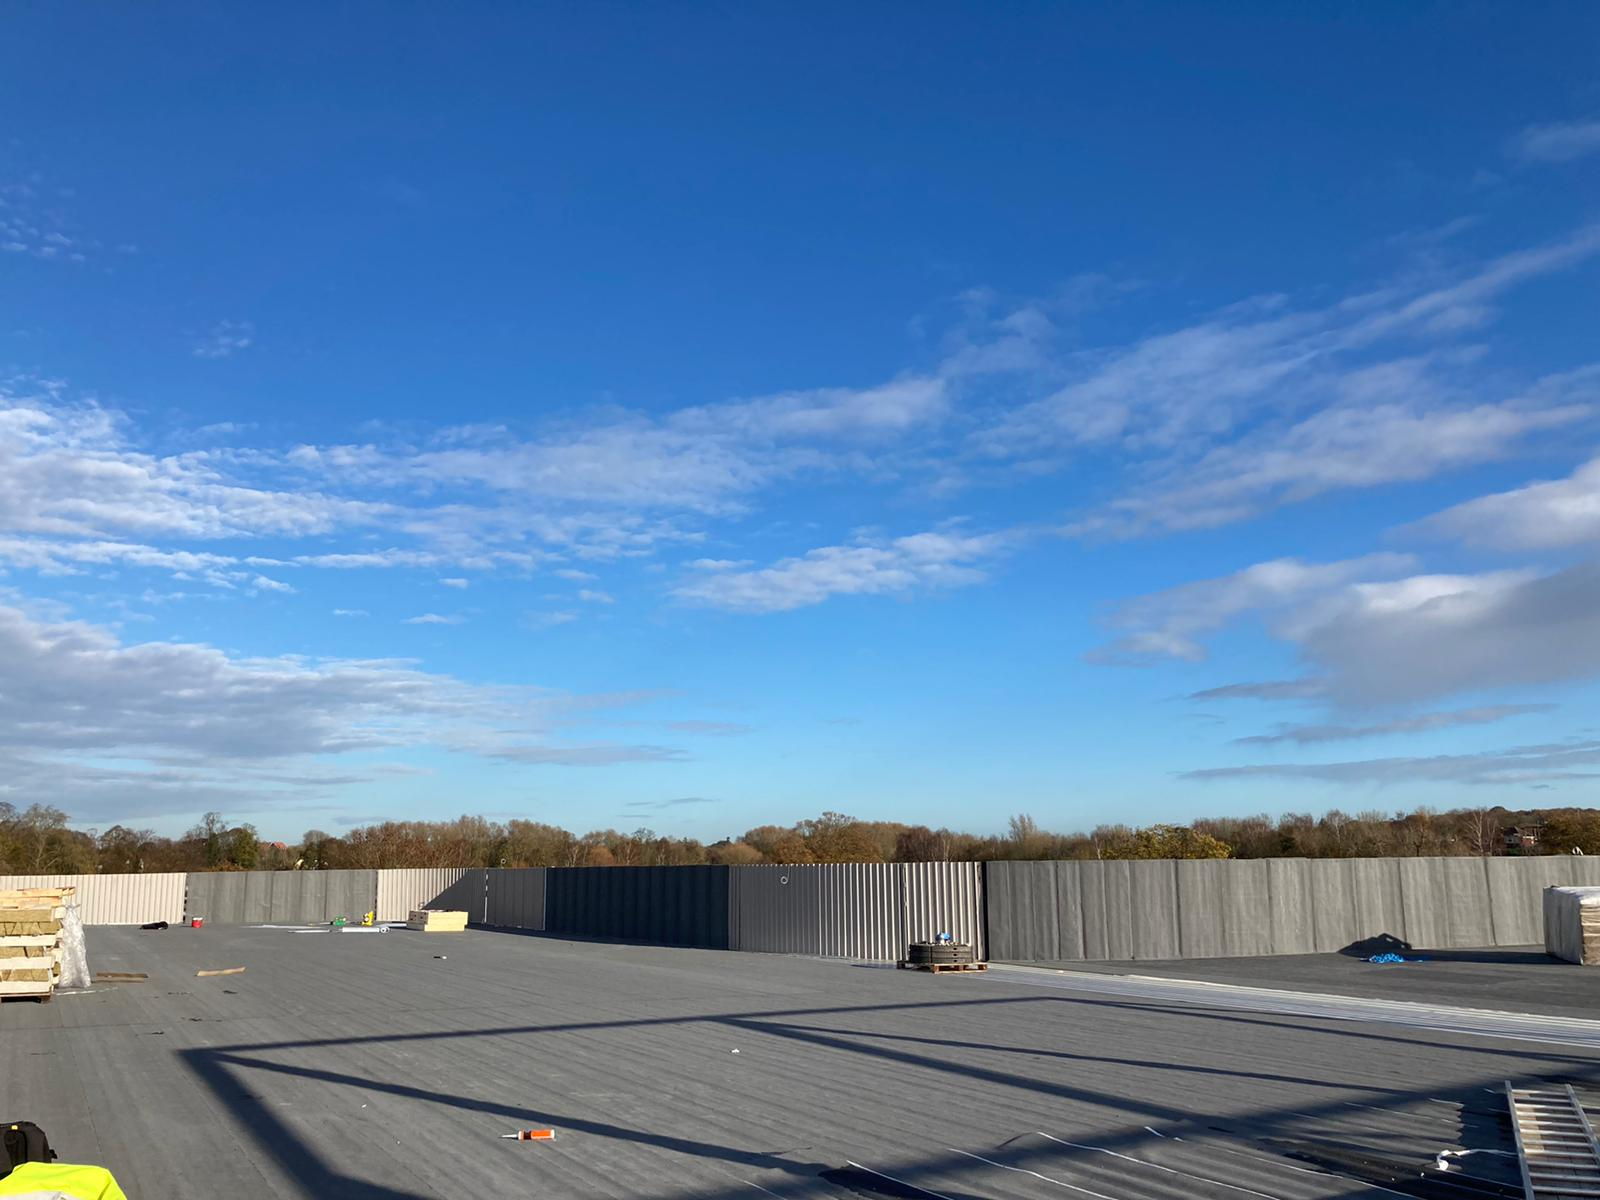 18.11.20 - the roof taking shape